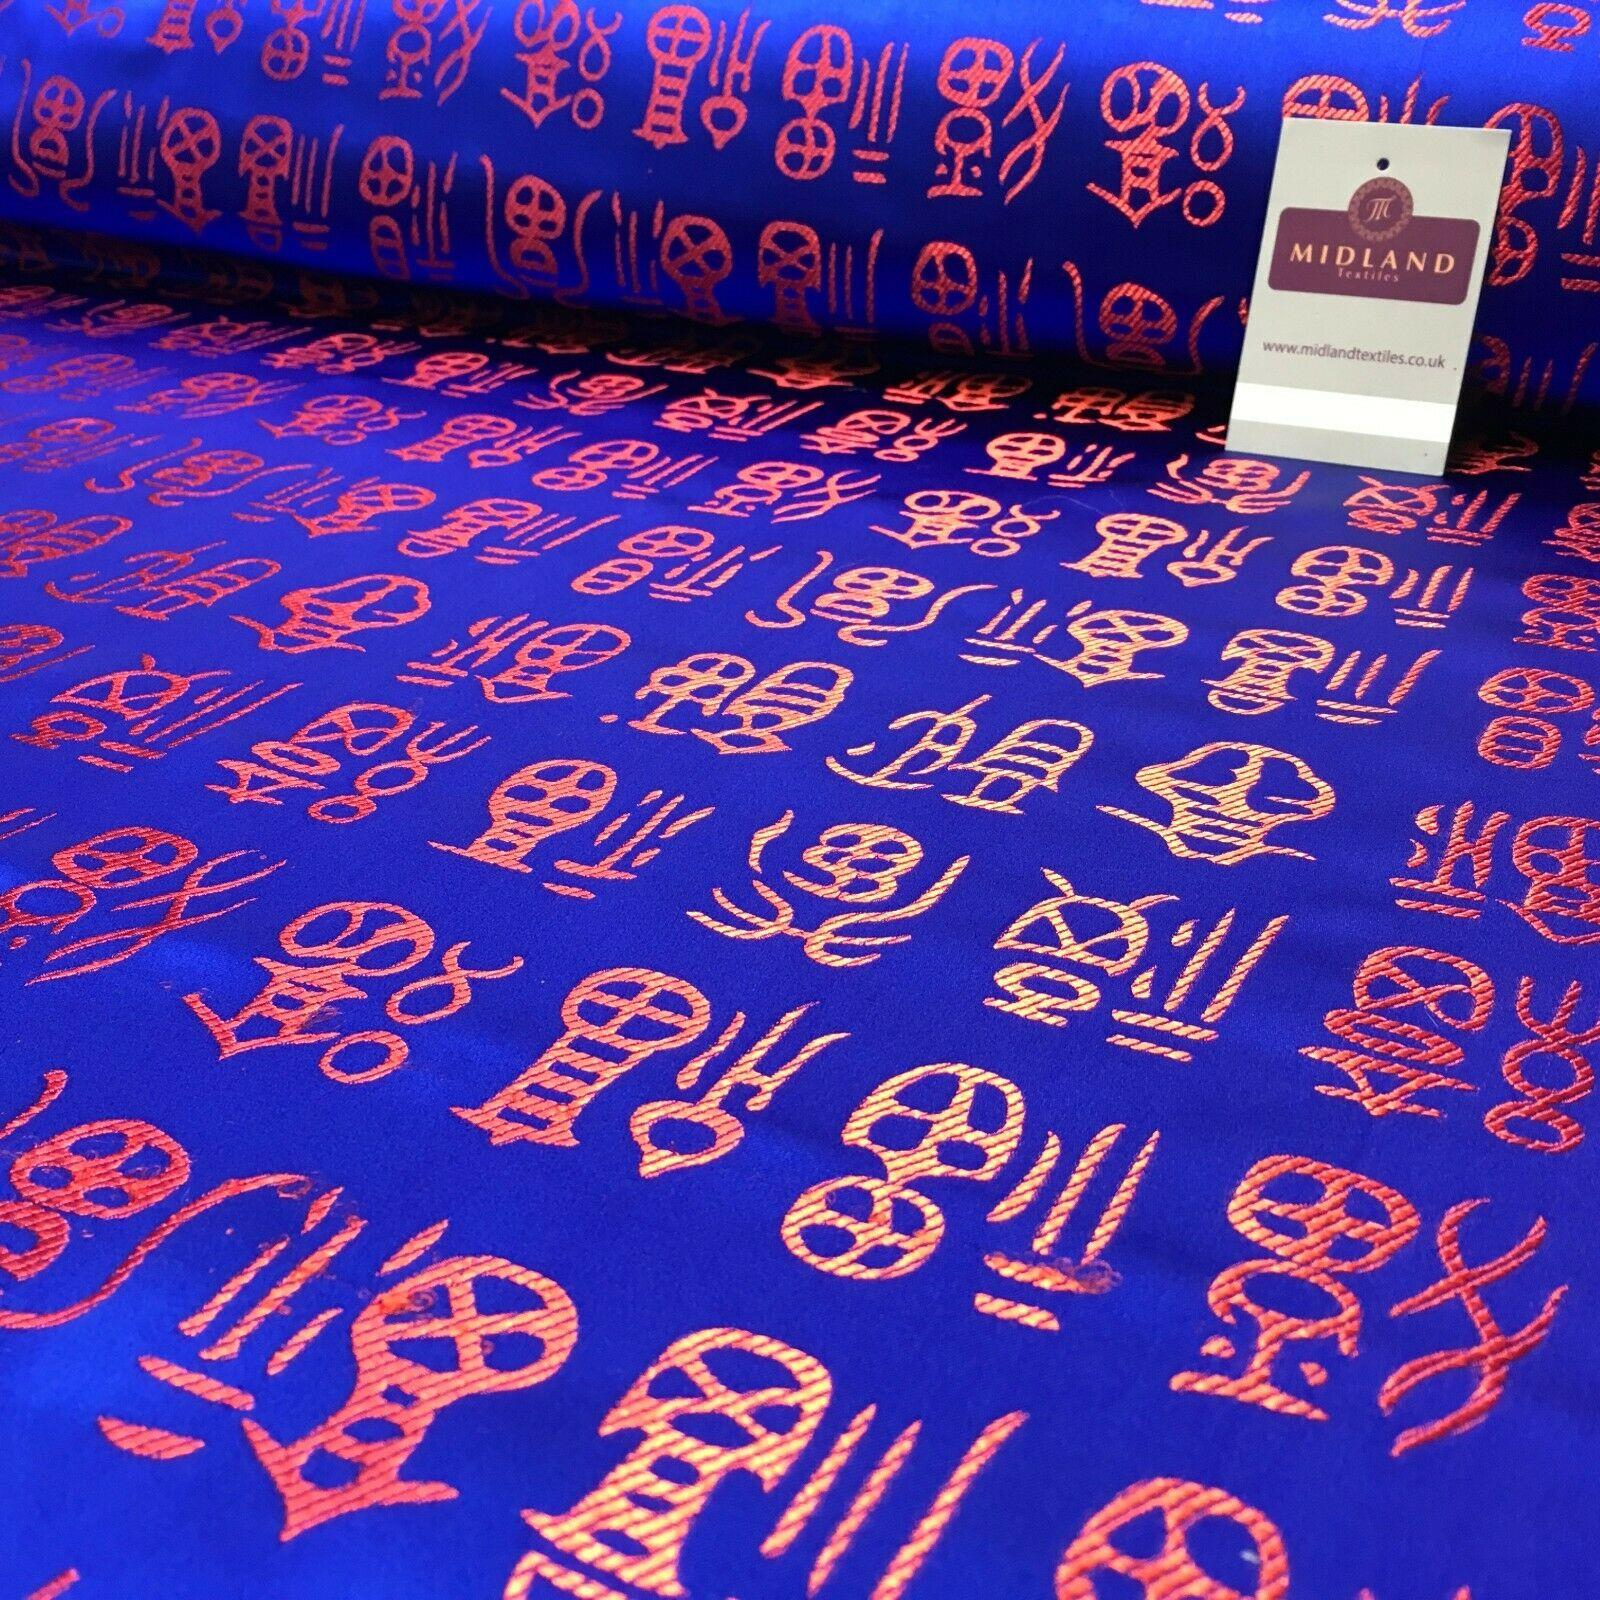 Royal Blue and Red Chinese Words Brocade Satin Dress Fabric 110cm Wide M395-29